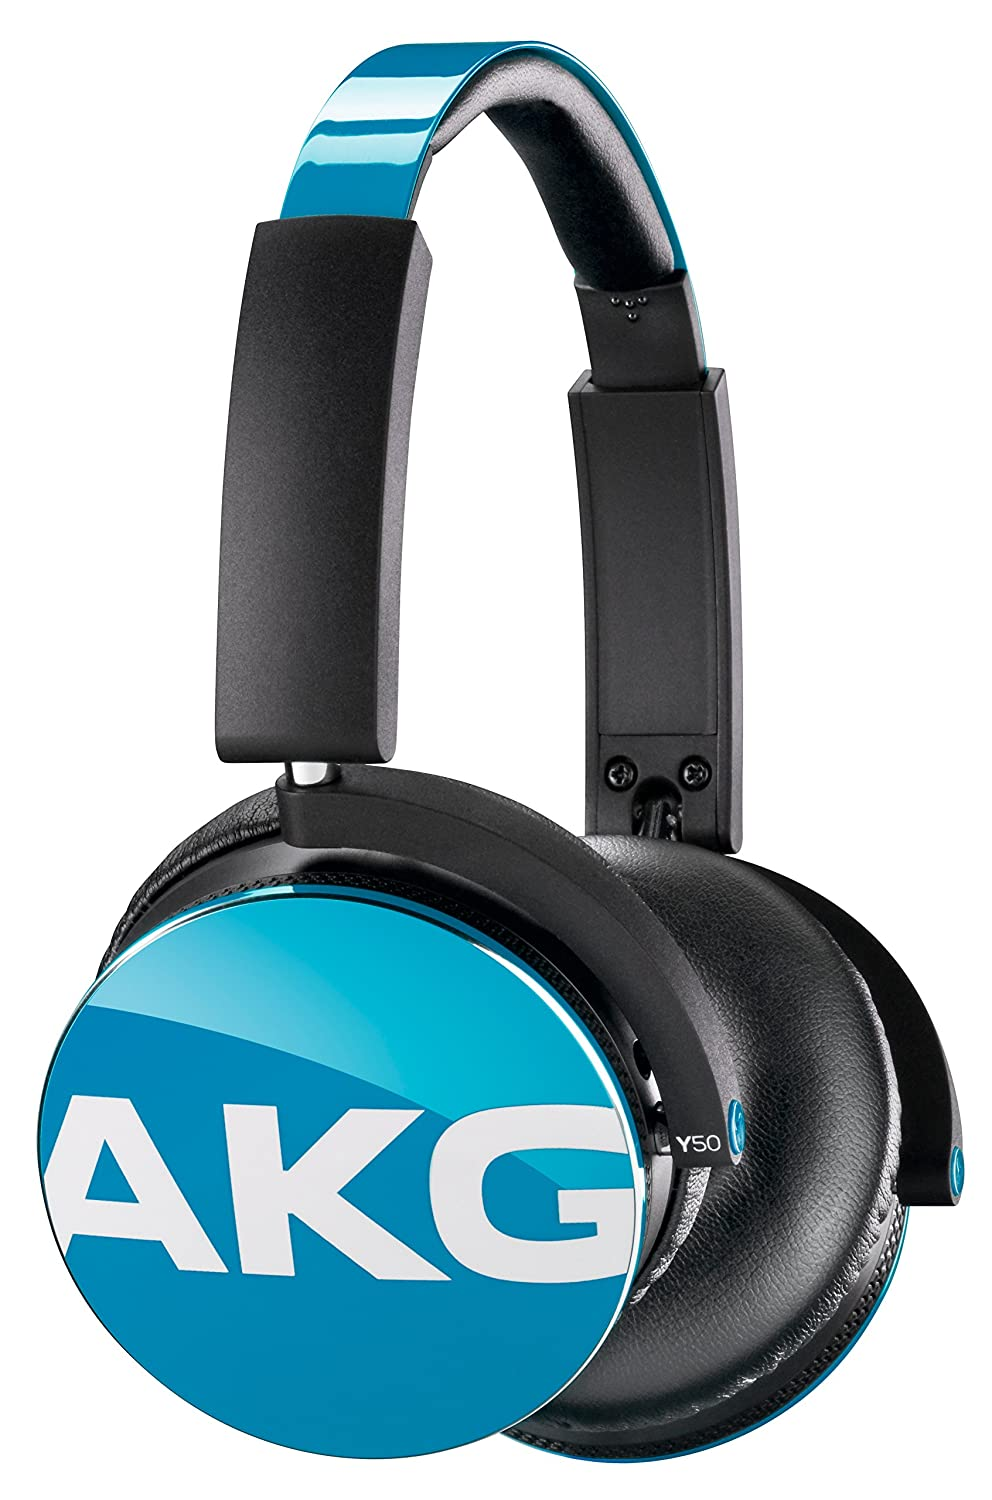 Amazon.com: AKG Y50 on ear headphones premium DJ-style teal blue ...